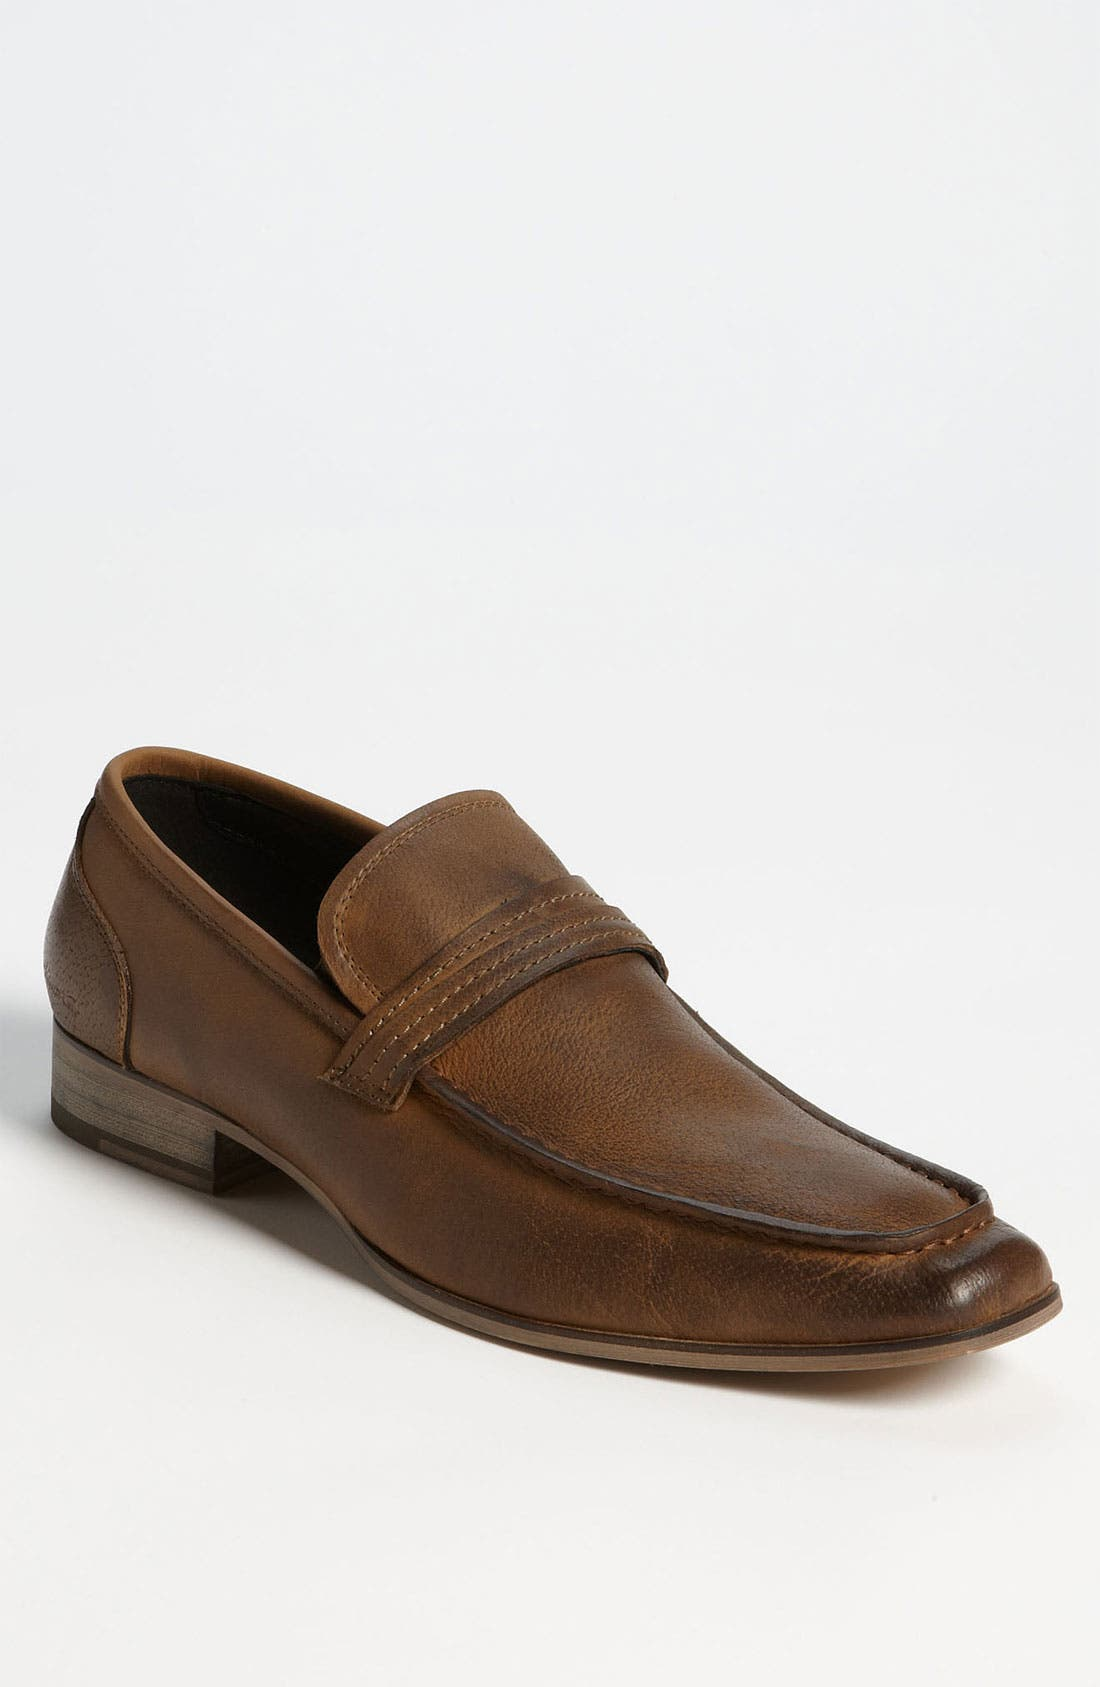 Main Image - Kenneth Cole New York 'Vic-tory Dance' Loafer